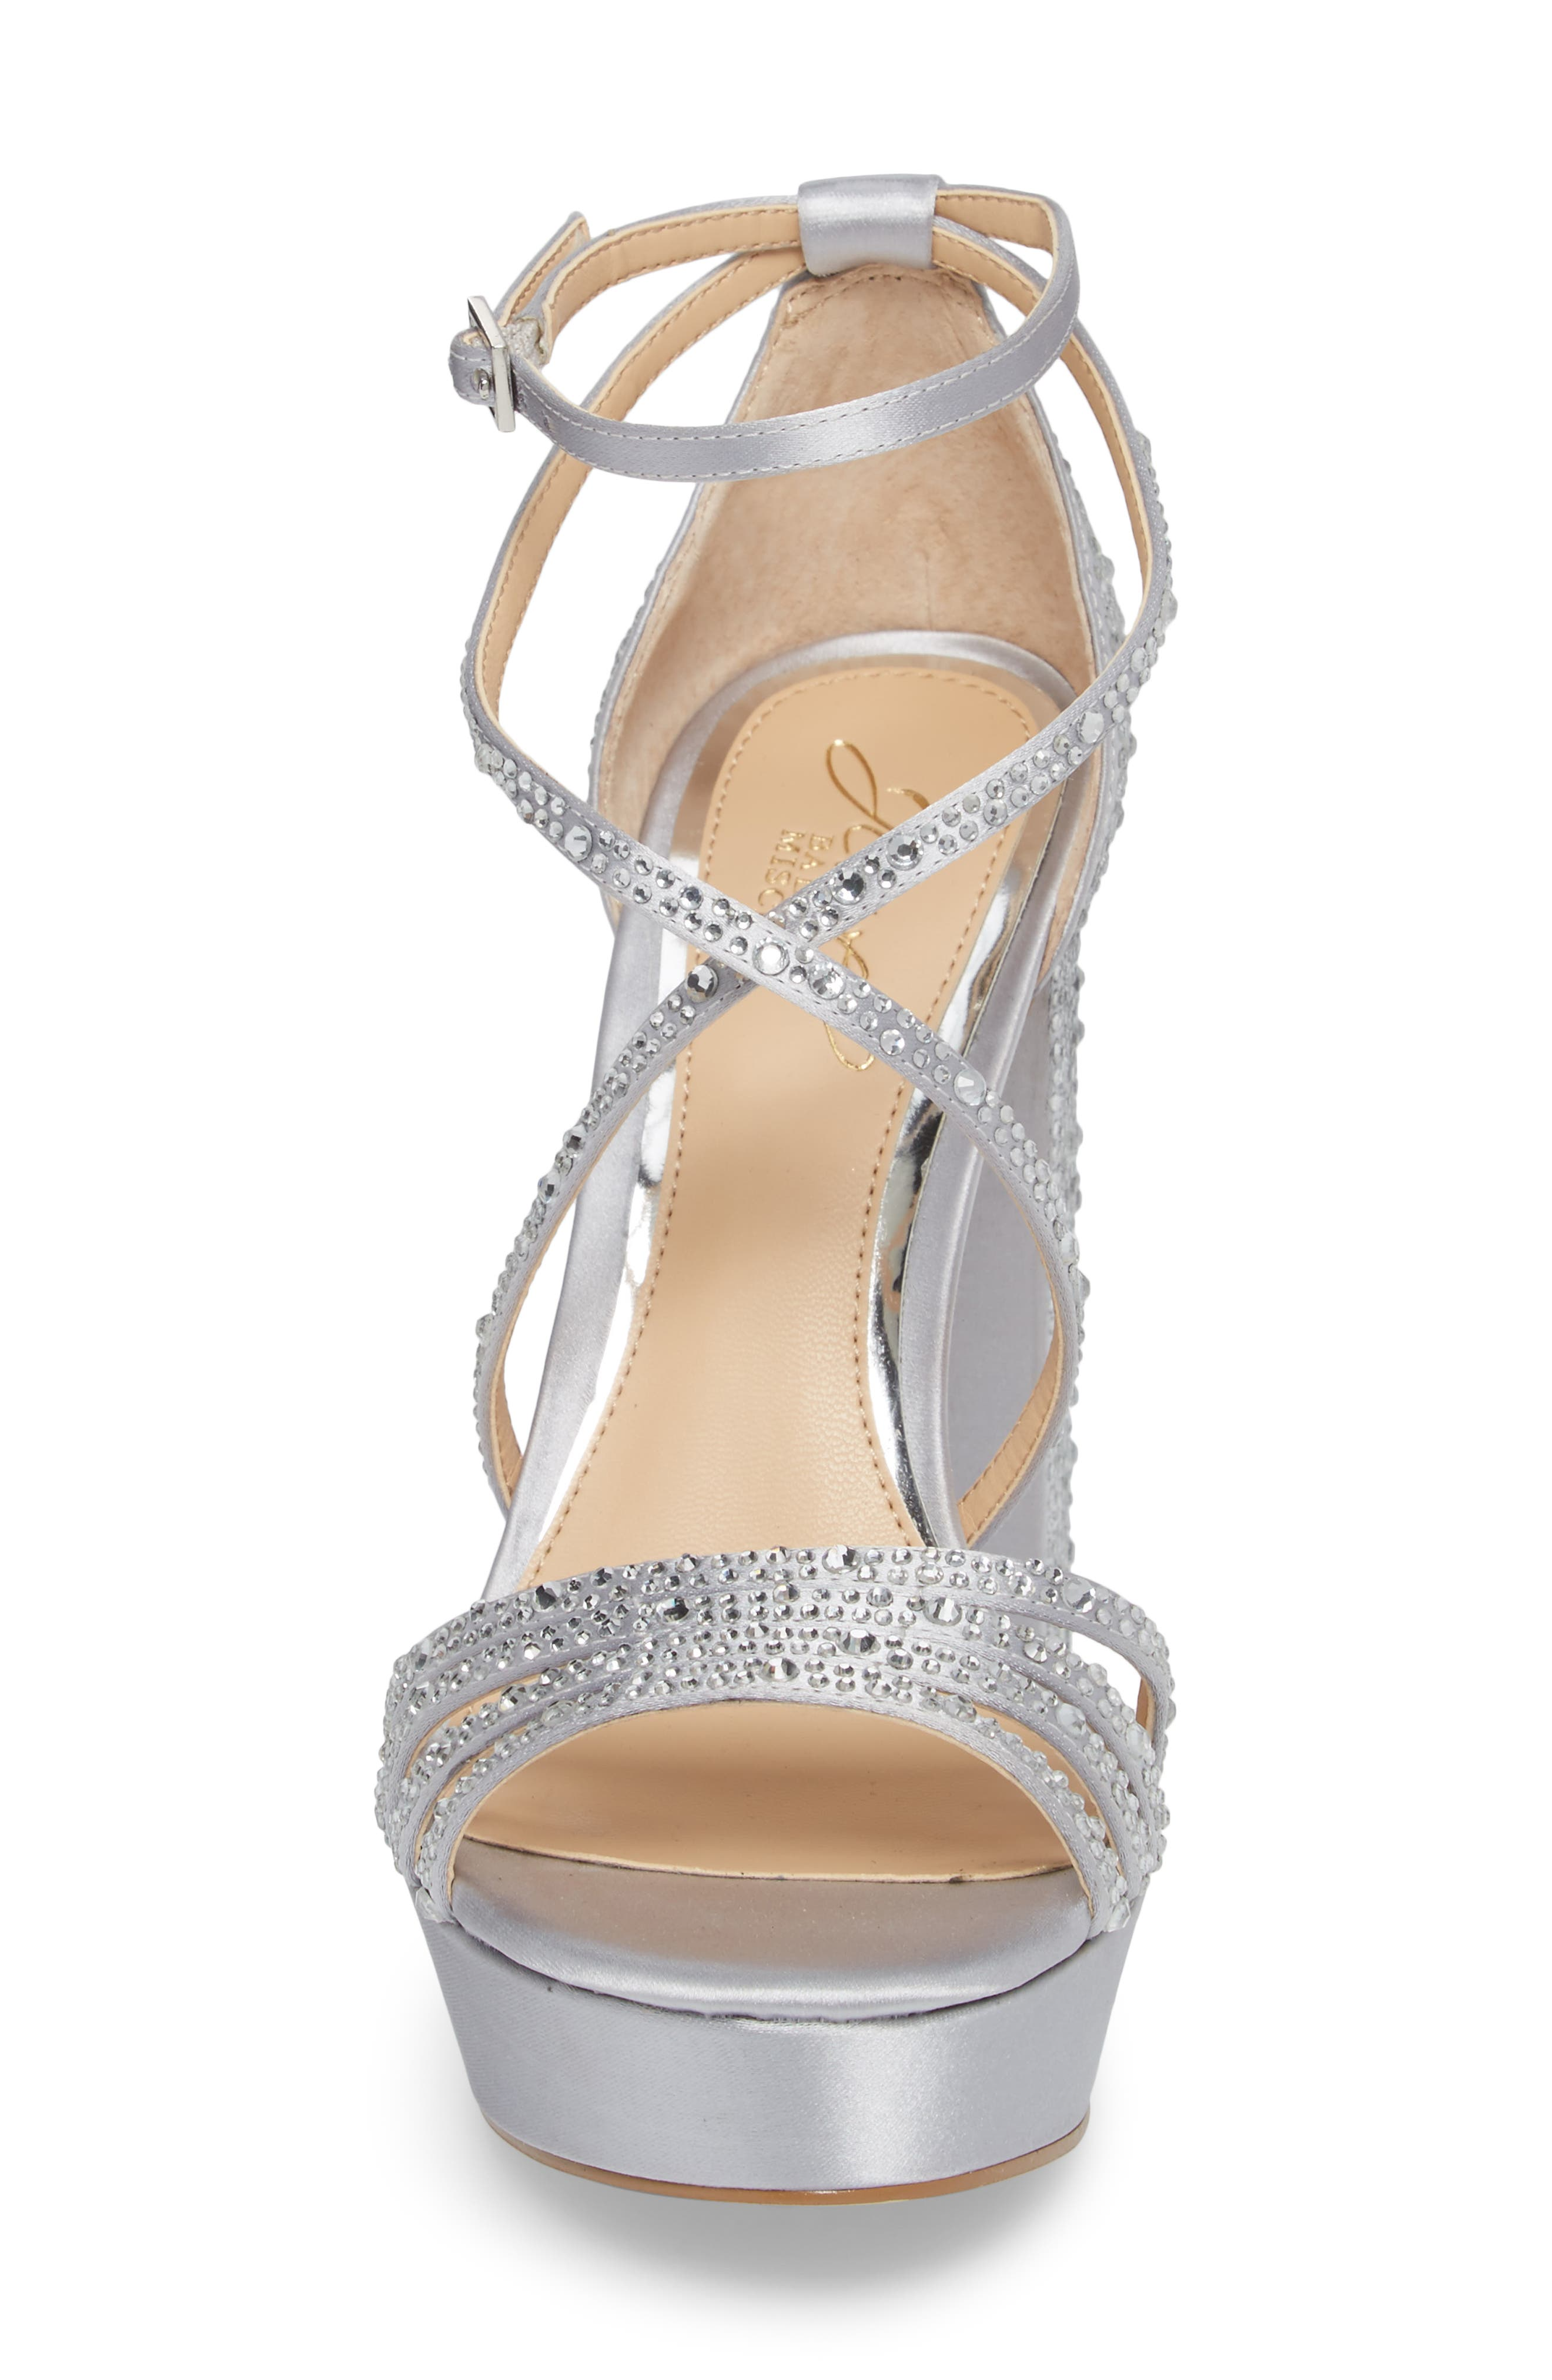 Tarah Crystal Embellished Platform Sandal,                             Alternate thumbnail 11, color,